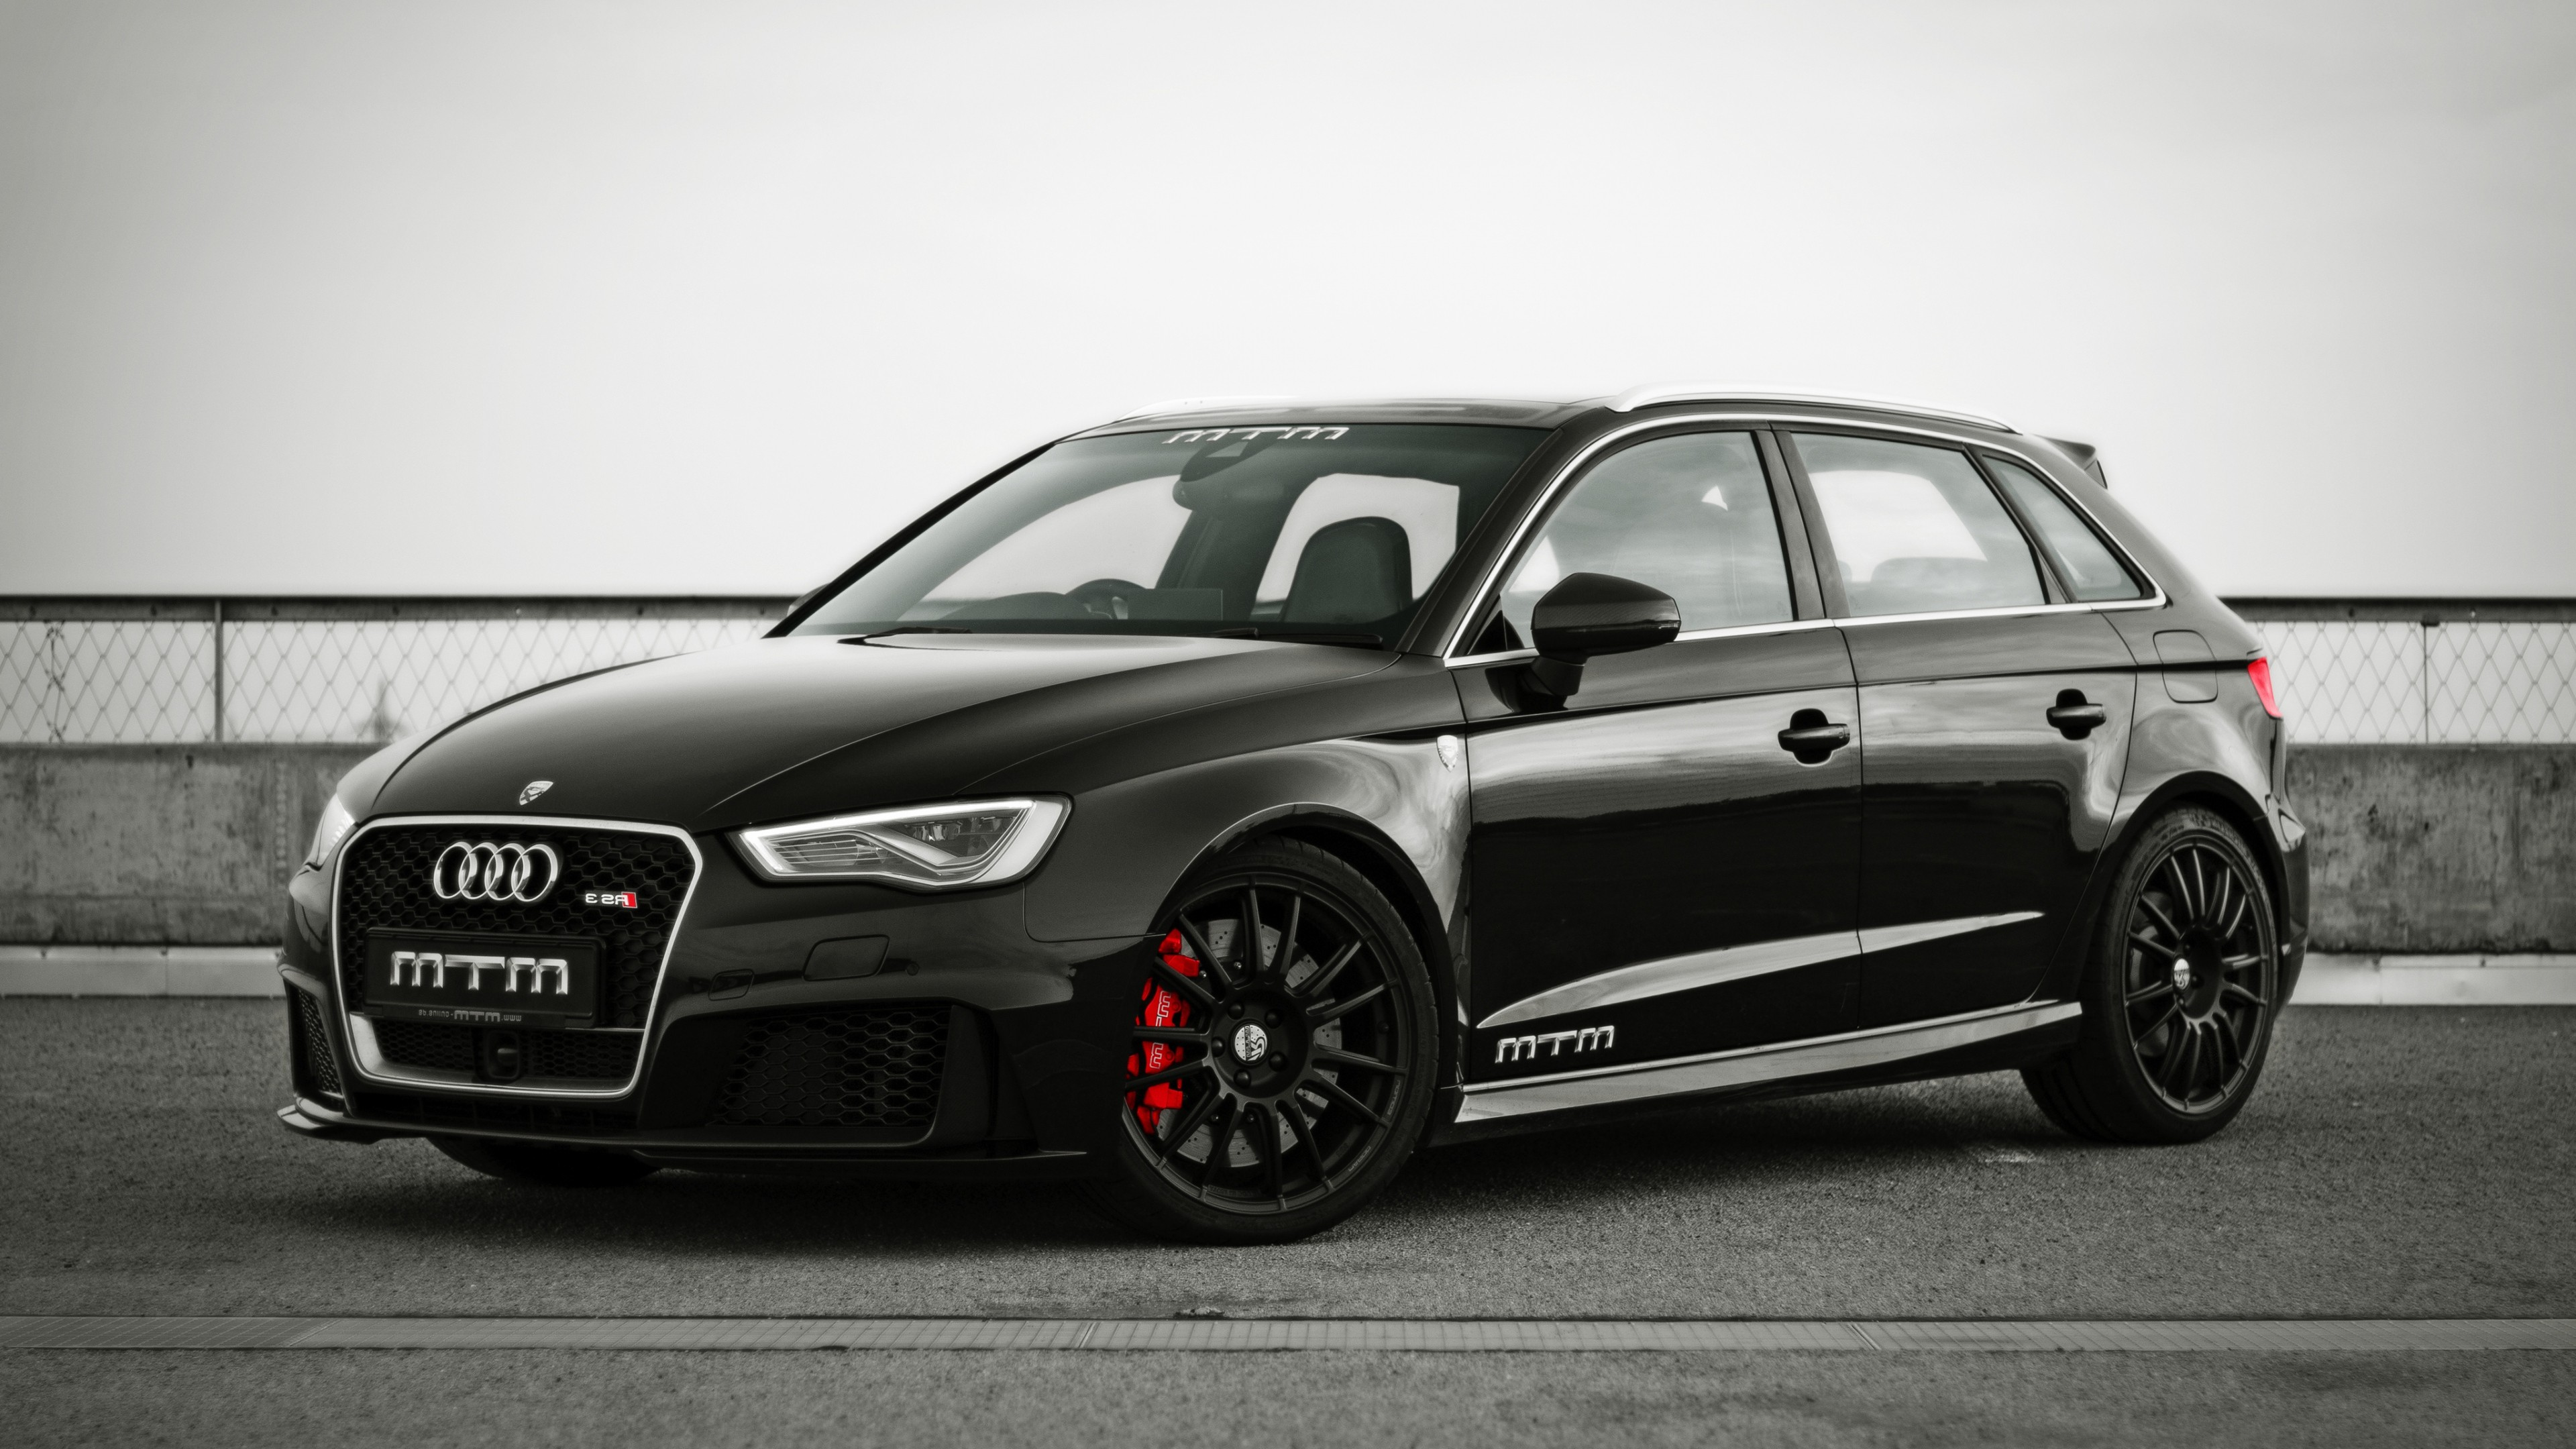 audi rs3 mtm hd cars 4k wallpapers images backgrounds. Black Bedroom Furniture Sets. Home Design Ideas